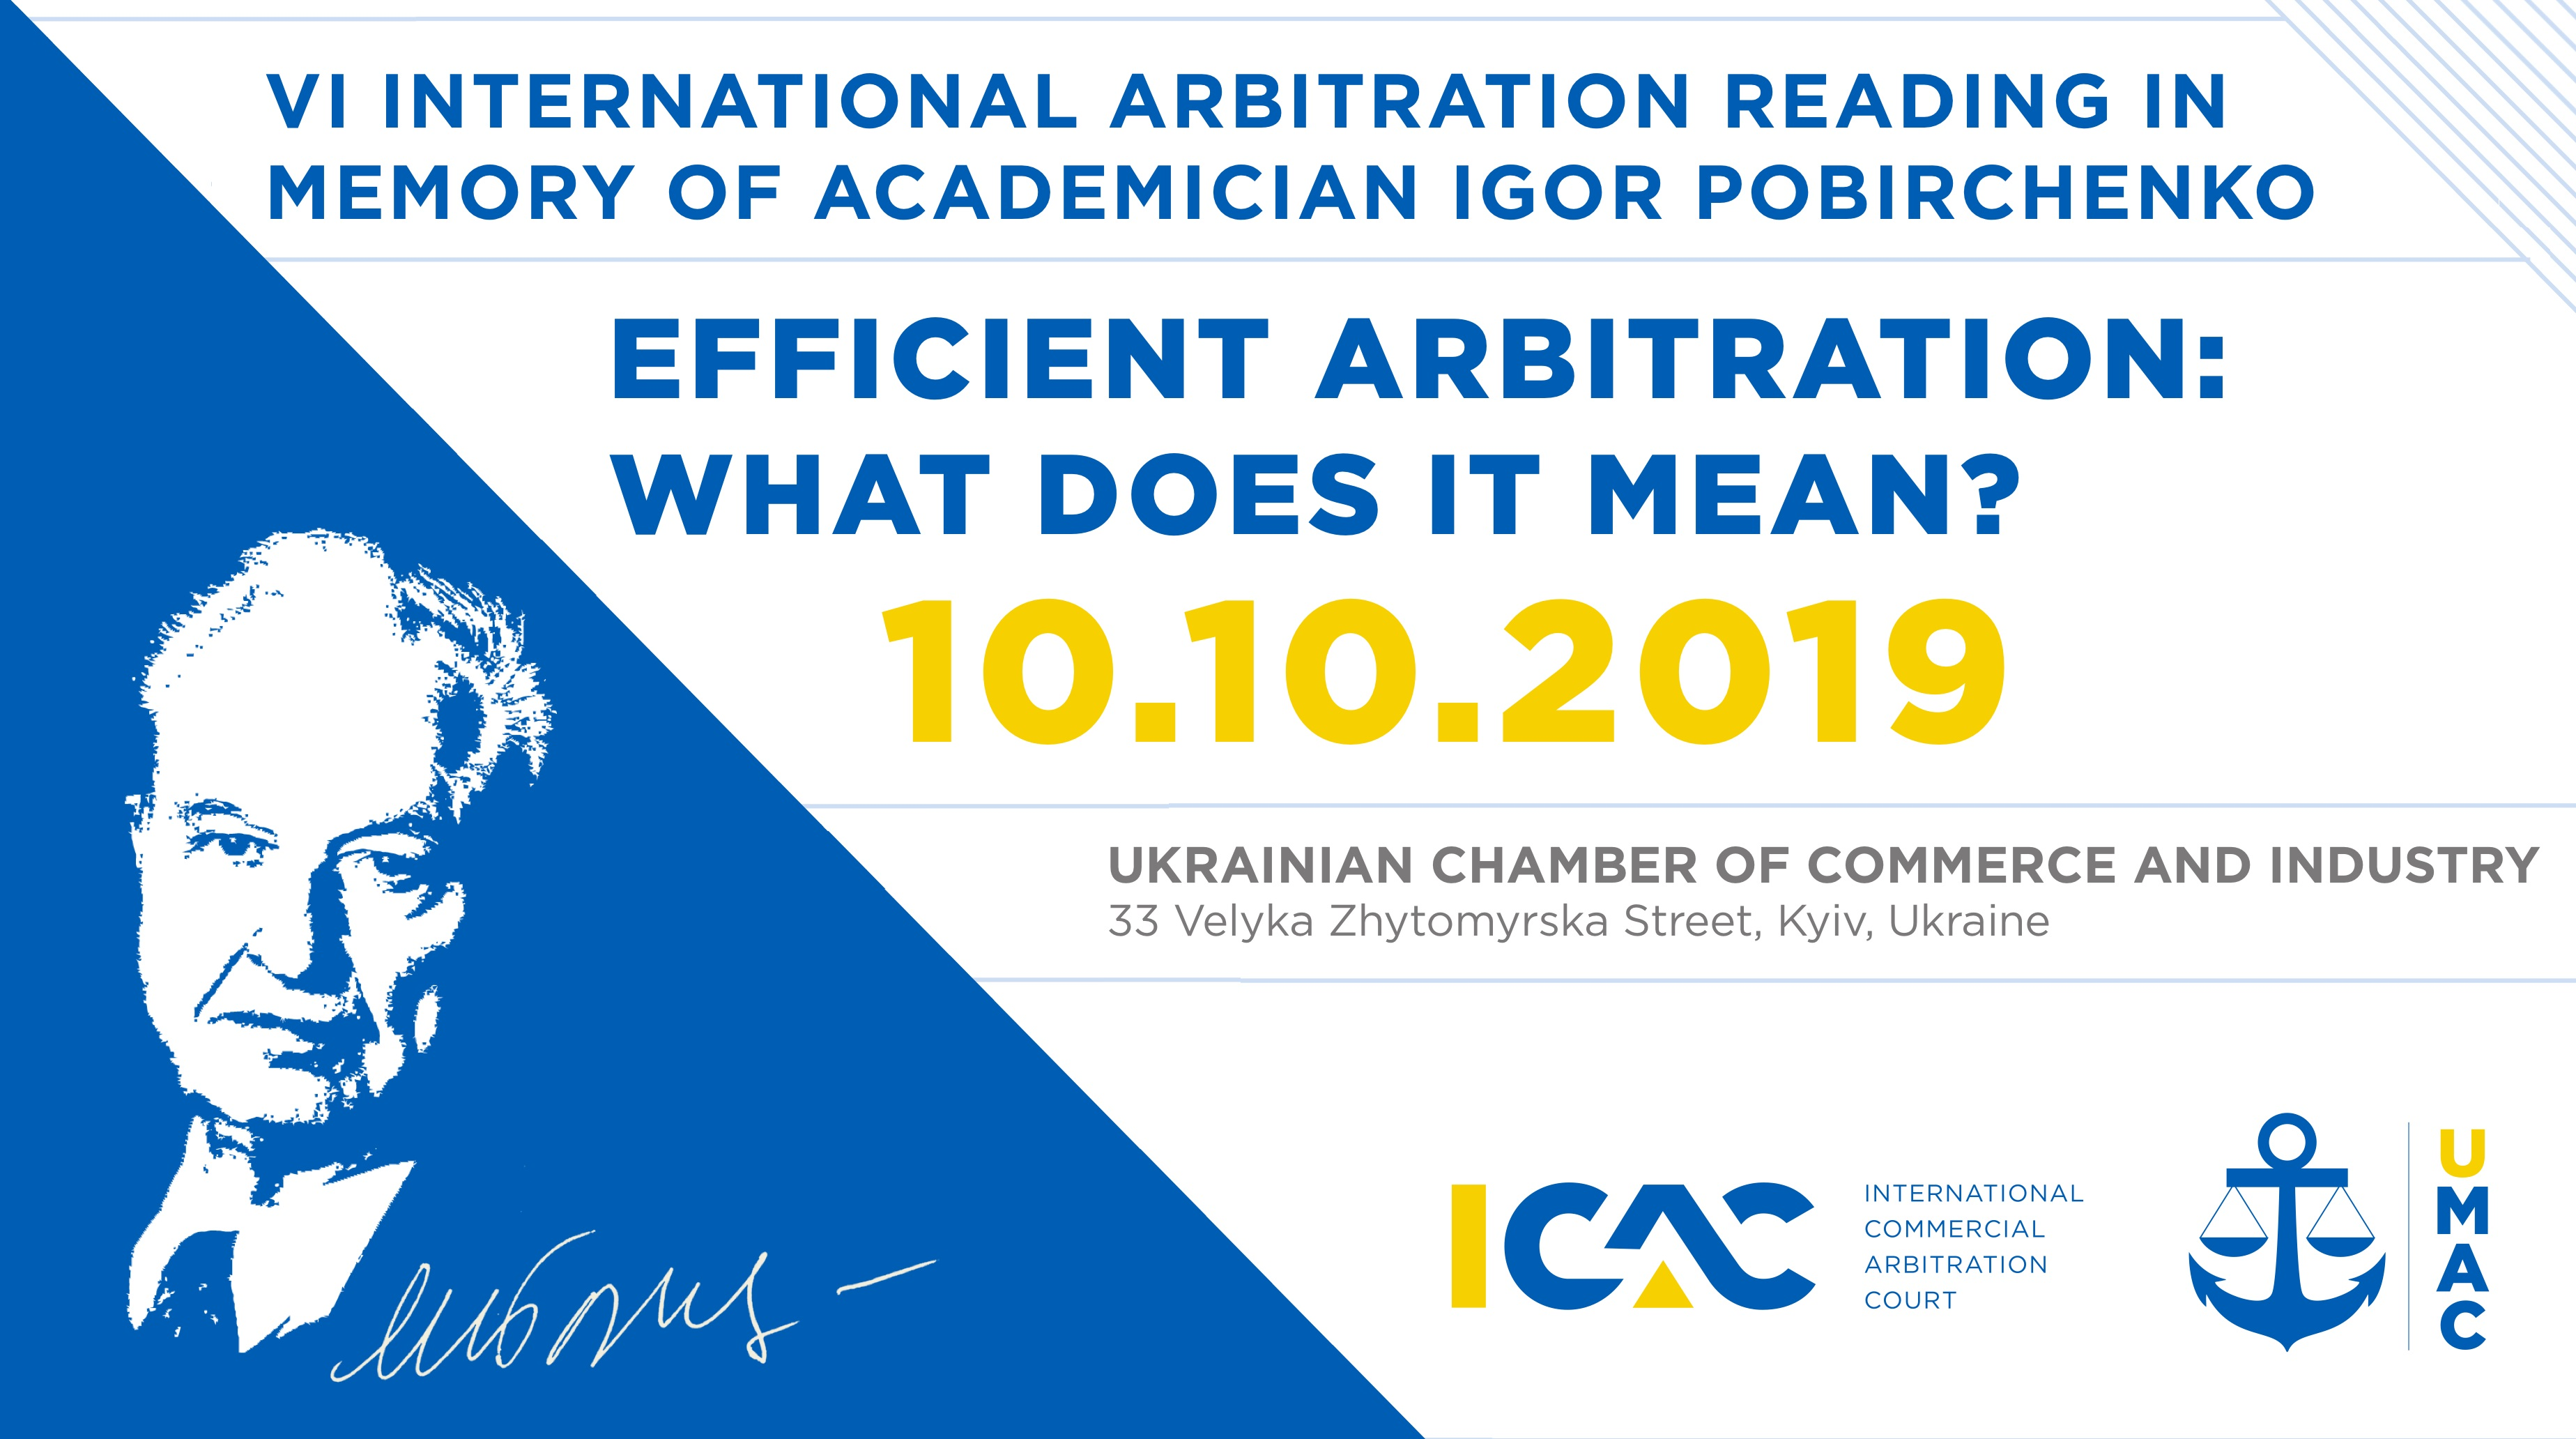 VI International Arbitration Readings in memory of Academician Igor Pobirchenko